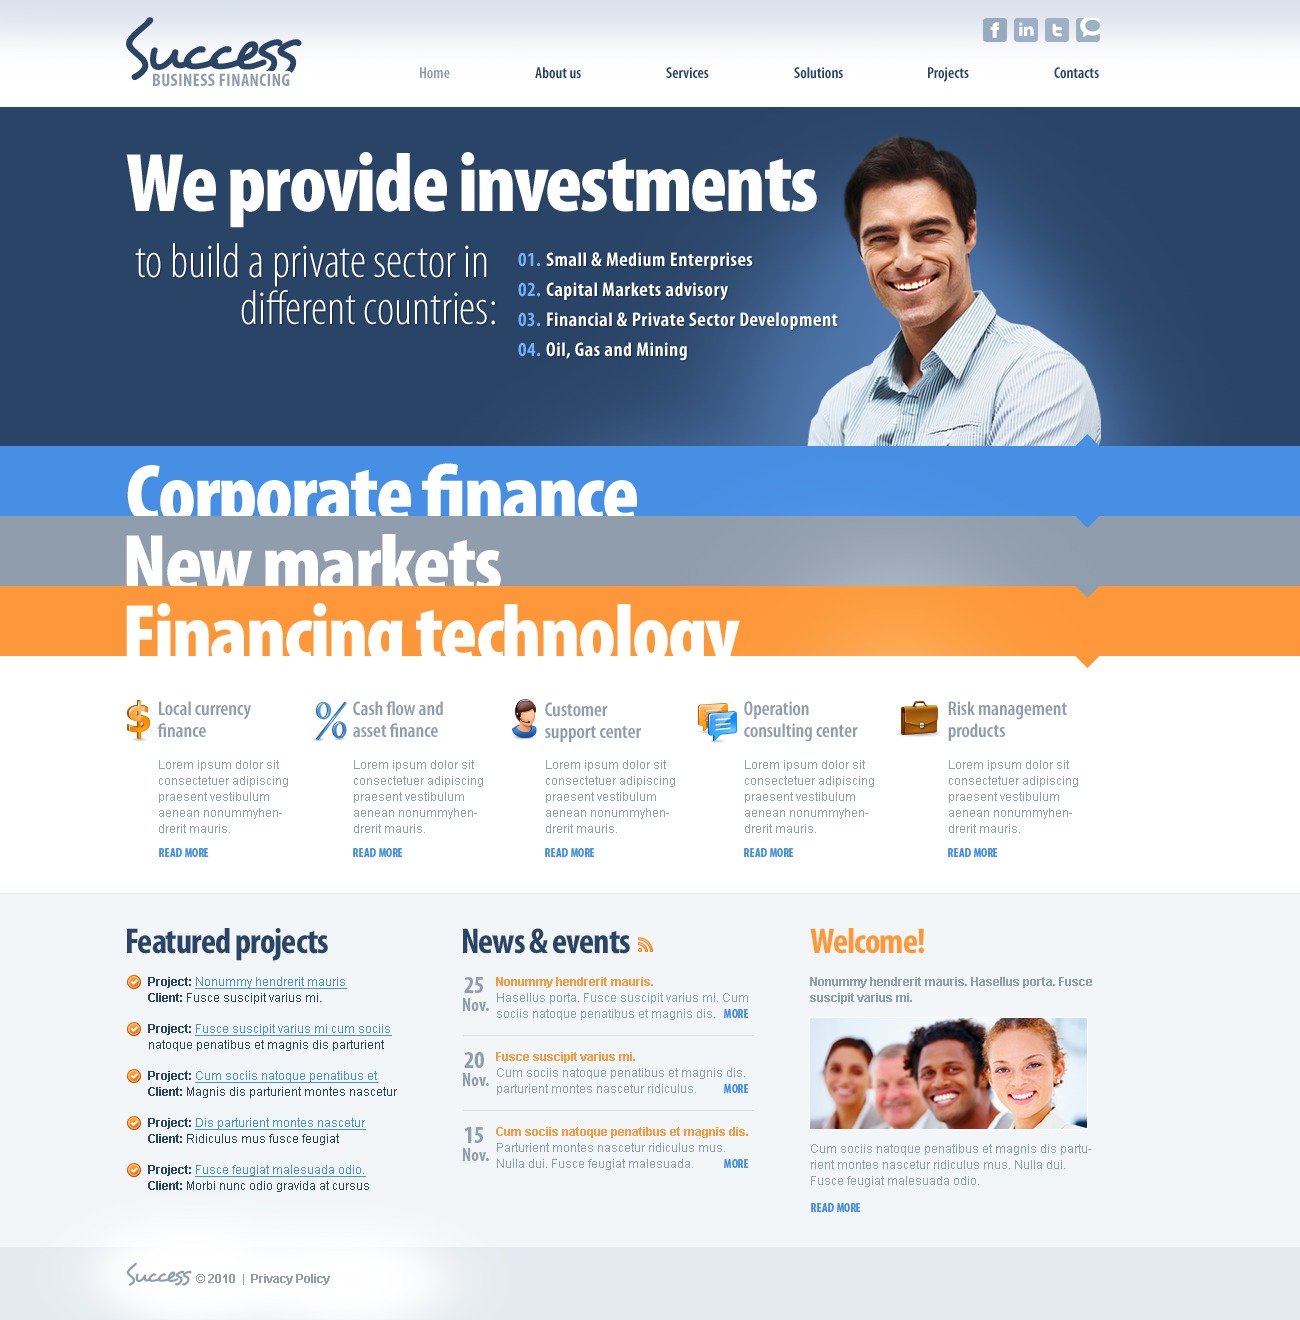 The Success Business Company PSD Design 54514, one of the best PSD templates of its kind (business, wide, jquery), also known as success business company PSD template, corporate solutions PSD template, innovations PSD template, contacts PSD template, service PSD template, support PSD template, information dealer PSD template, stocks PSD template, team PSD template, success PSD template, money PSD template, marketing PSD template, director PSD template, manager PSD template, analytics PSD template, planning PSD template, limited PSD template, office PSD template, sales and related with success business company, corporate solutions, innovations, contacts, service, support, information dealer, stocks, team, success, money, marketing, director, manager, analytics, planning, limited, office, sales, etc.